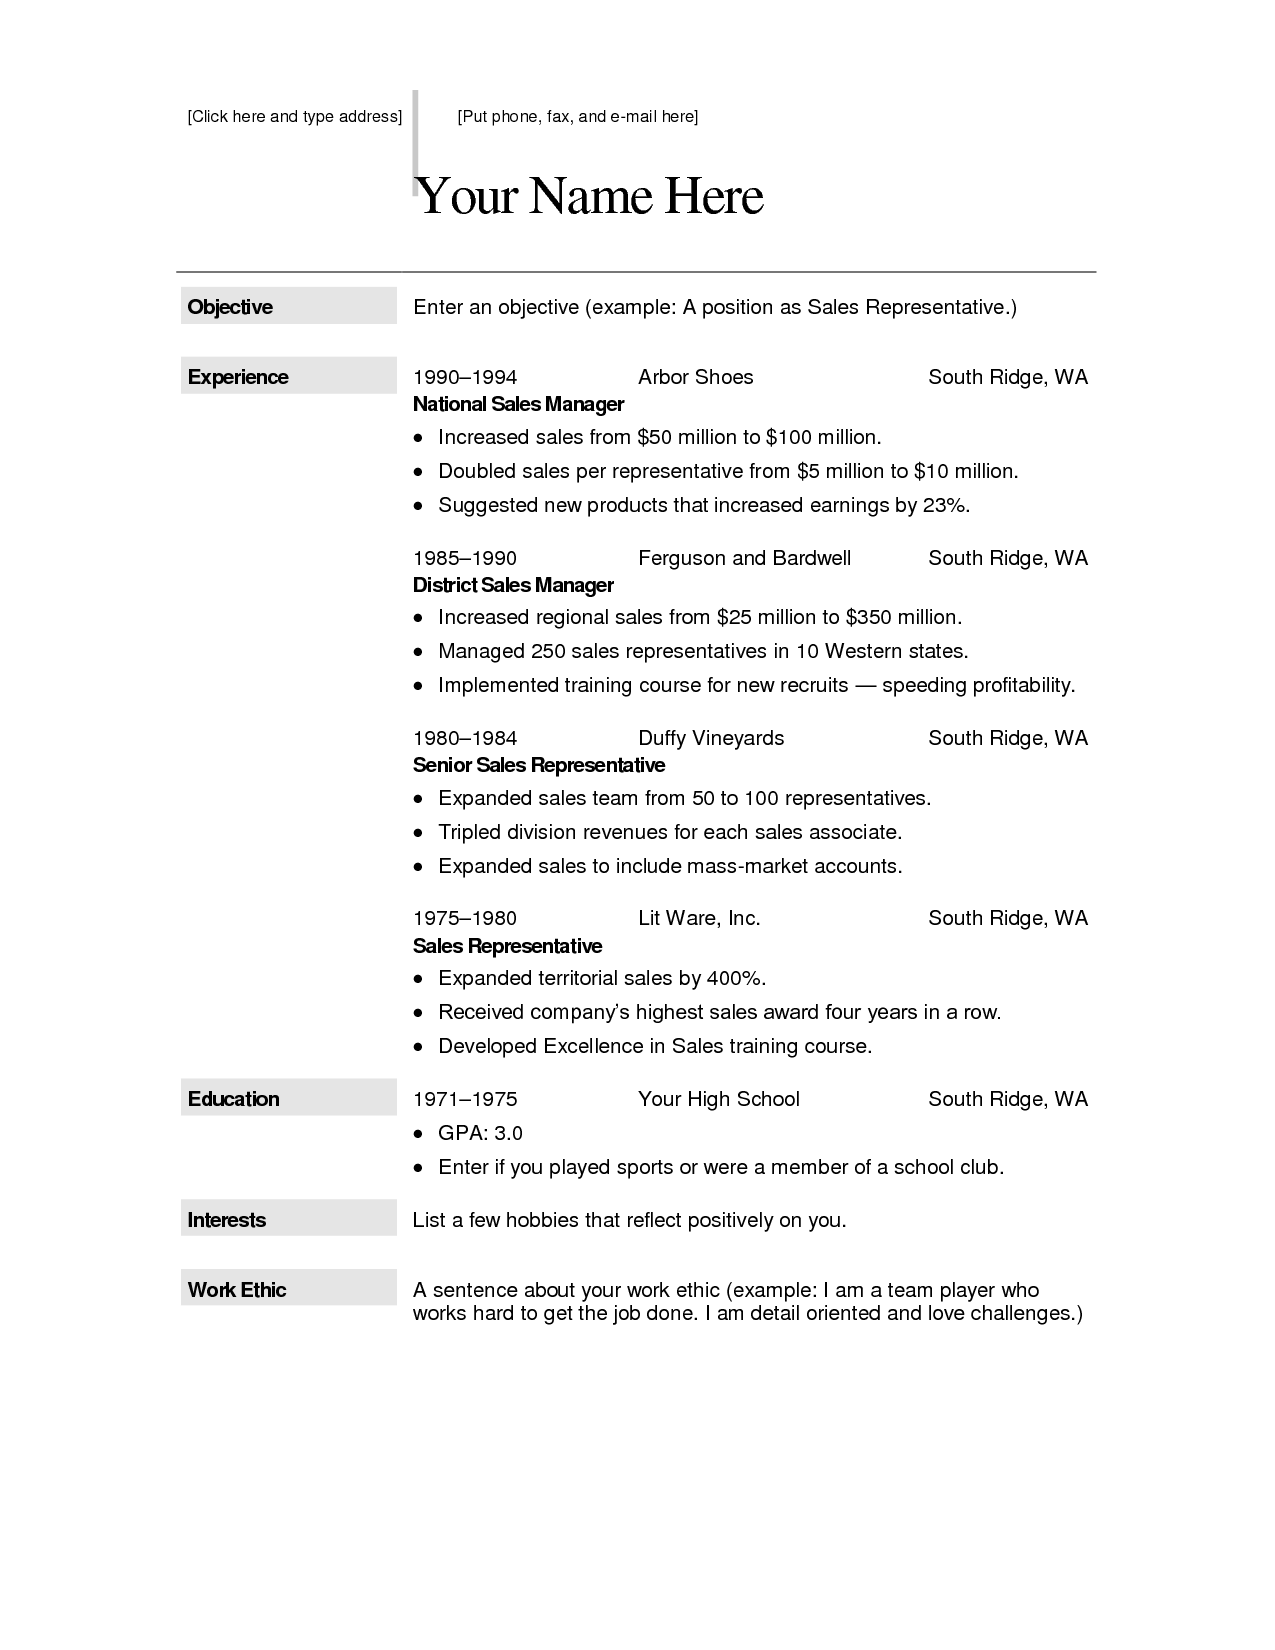 Word 2007 Resume Template Free Creative Resume Templates For Macfree Creative Resume